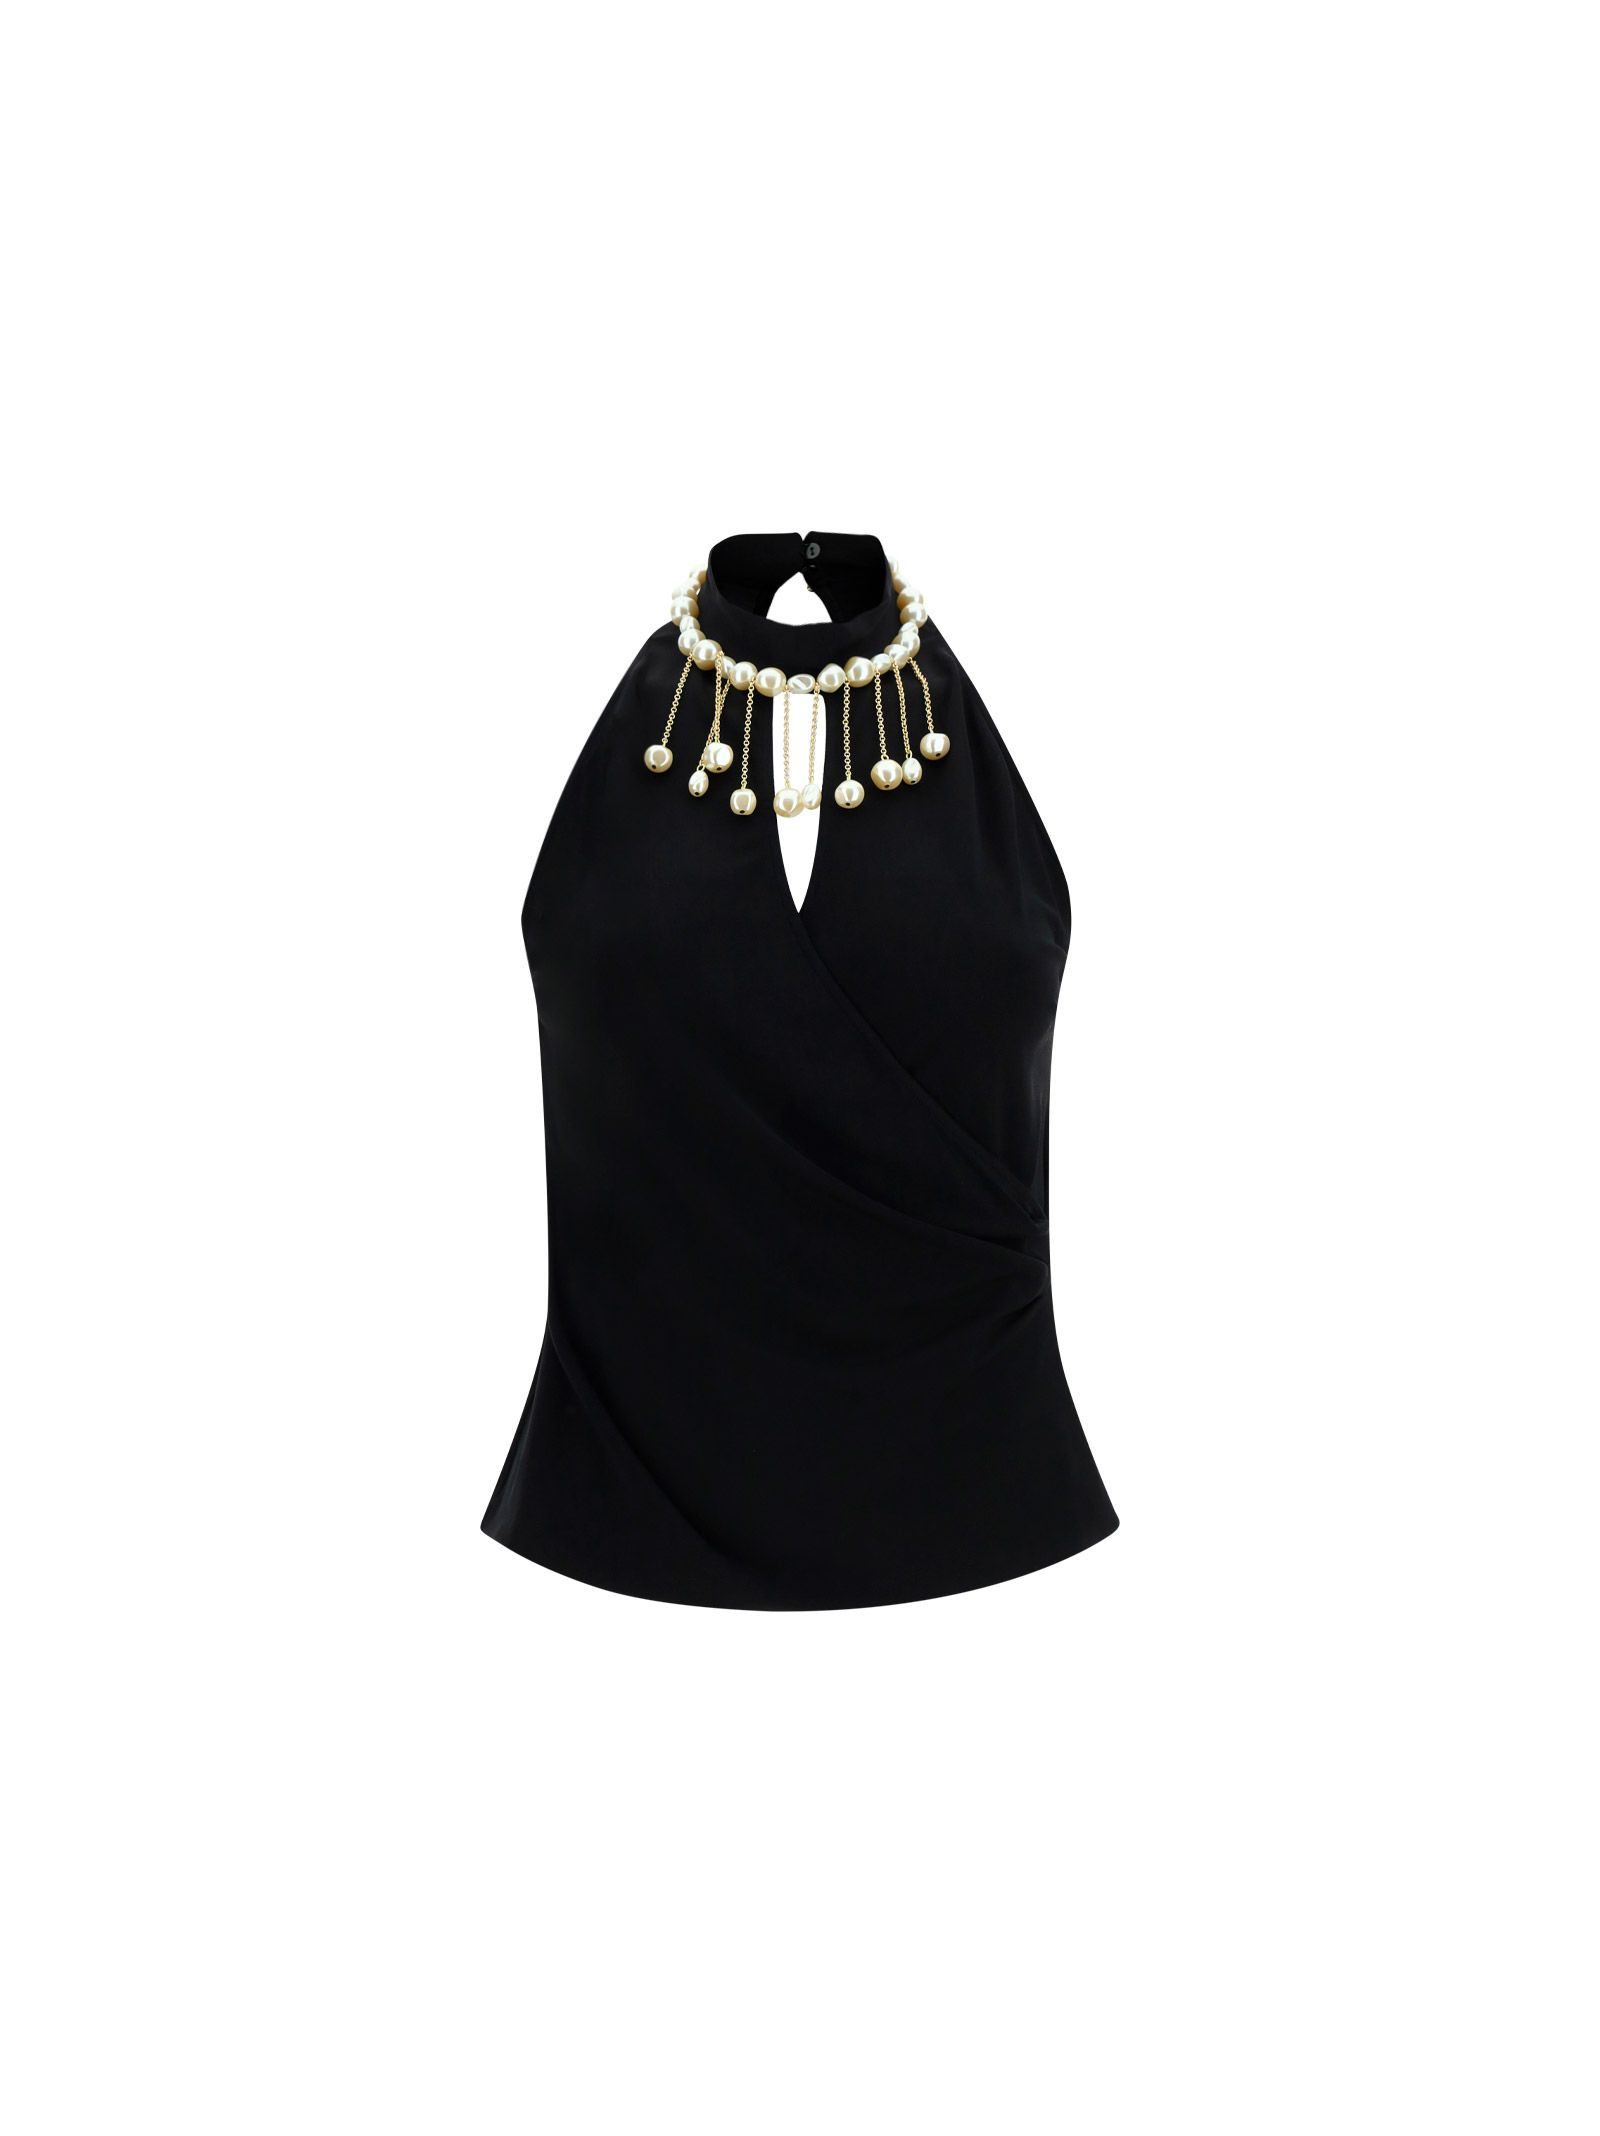 Pinko Blouses PINKO WOMEN'S 1G15VKY6X3Z99 BLACK OTHER MATERIALS TOP